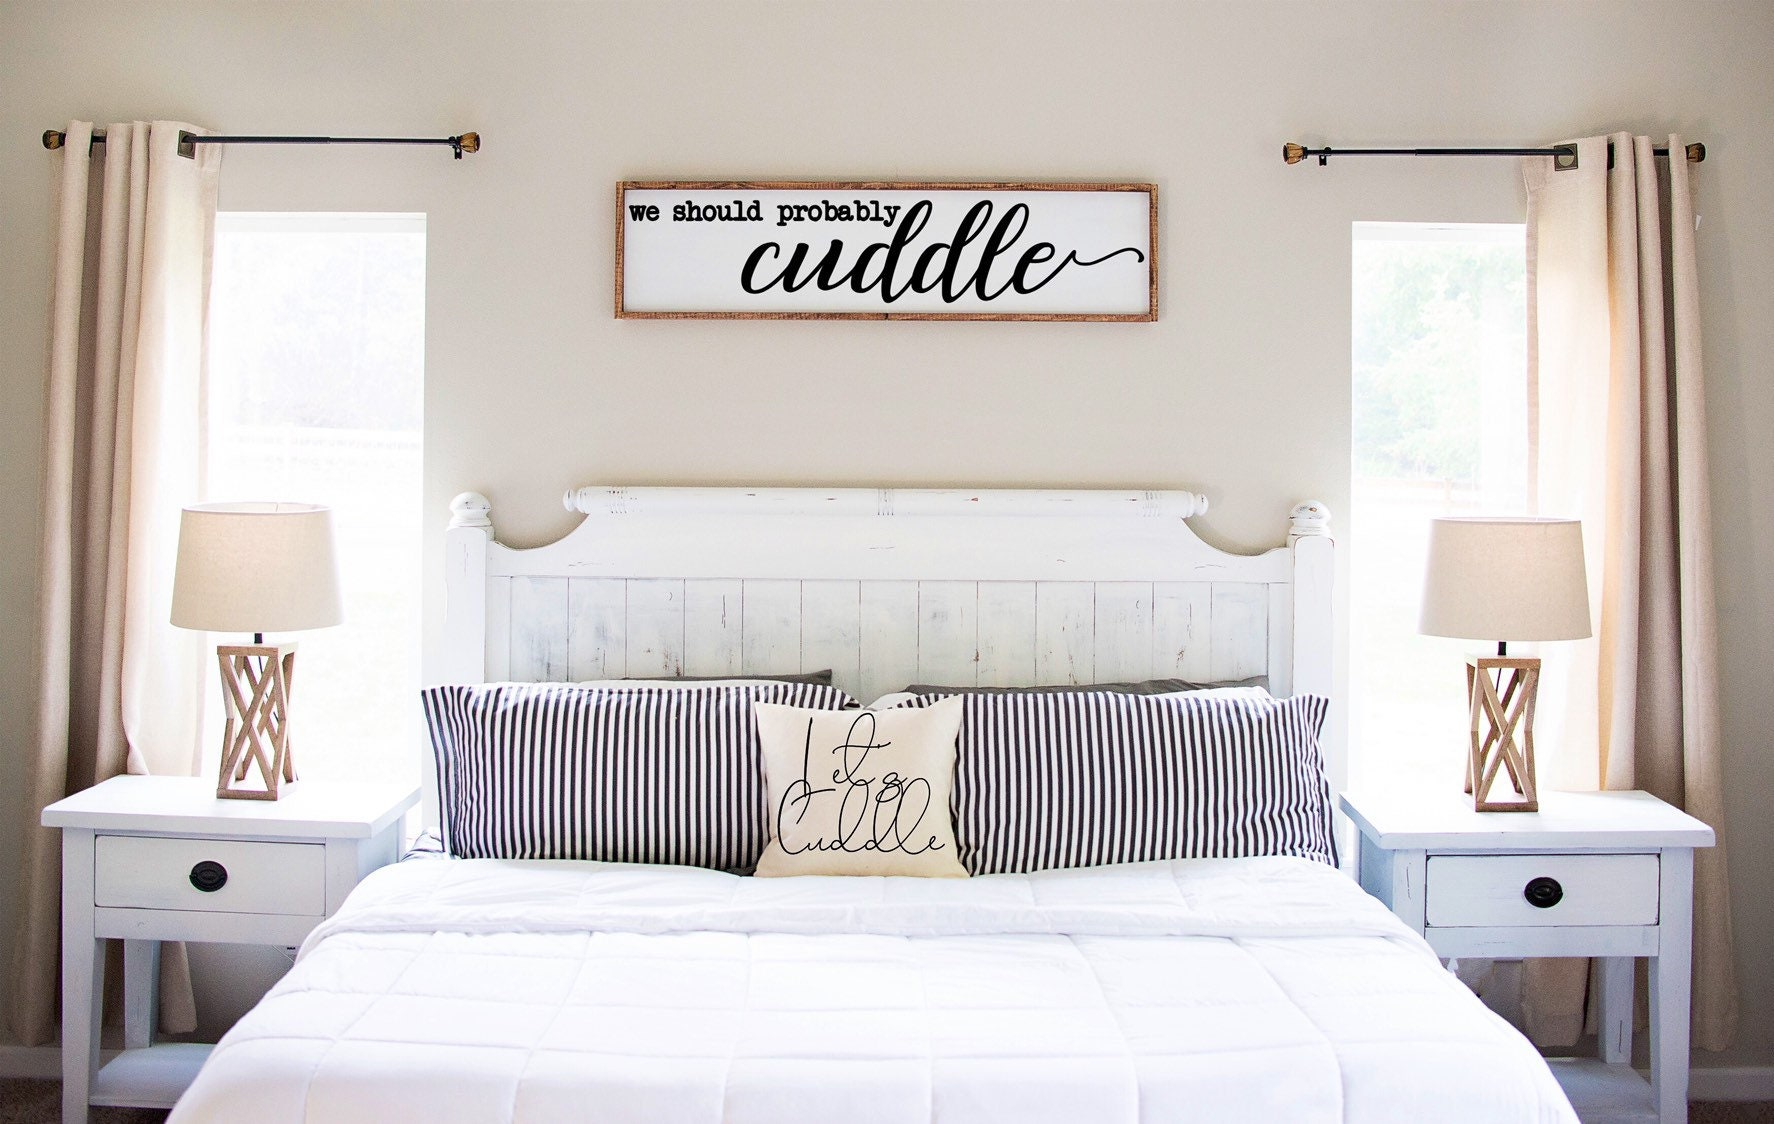 We Should Probably Cuddle Sign Wood Sign Anniversary Gift Above Bed Sign Gifts For Her Rustic Country Home Decor Farmhouse Sign